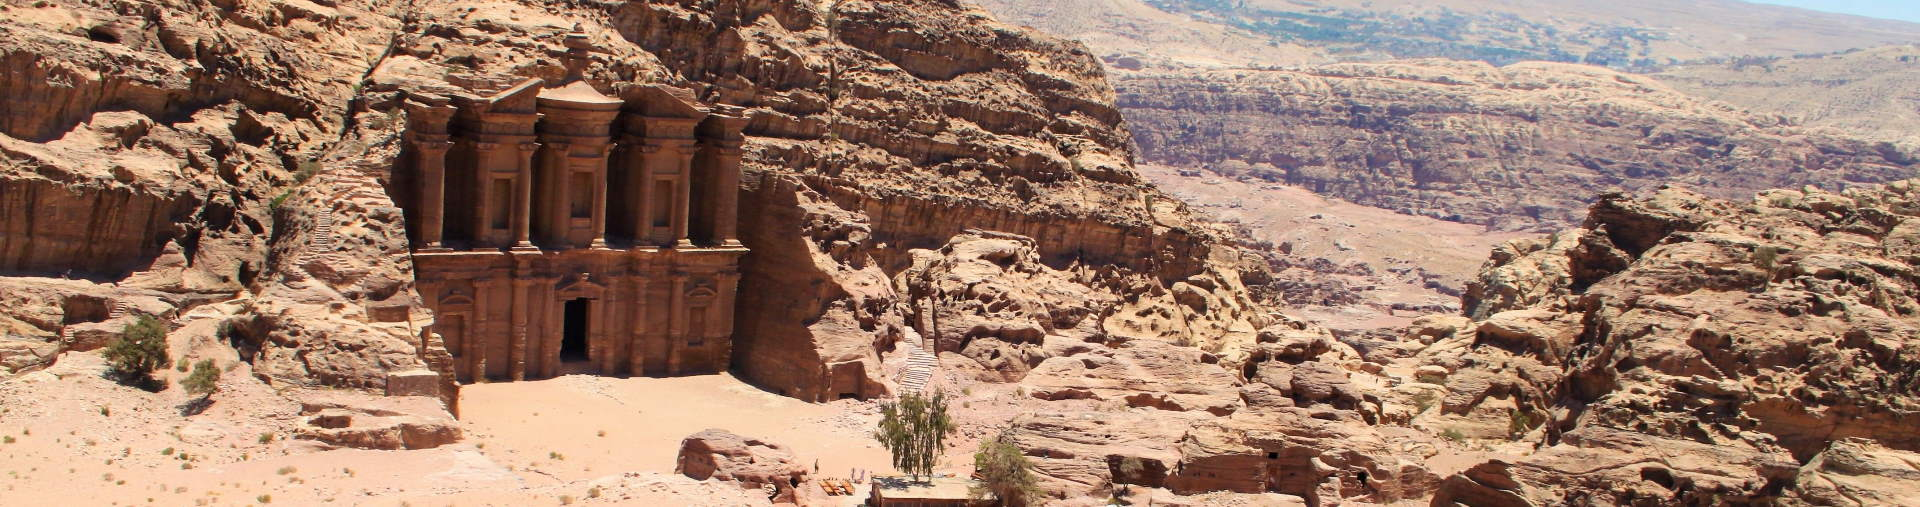 Seven Wonders of the World, Petra